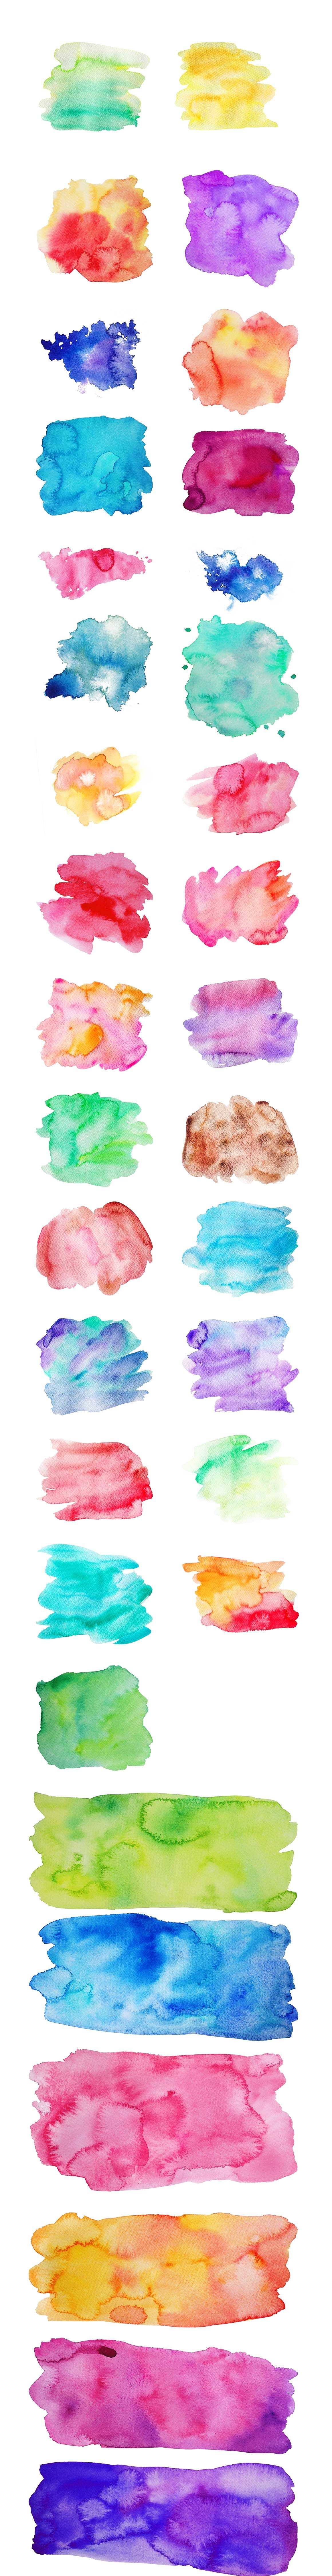 Vector & JPG Watercolor Textures & Photoshop Effect Styles example image 5